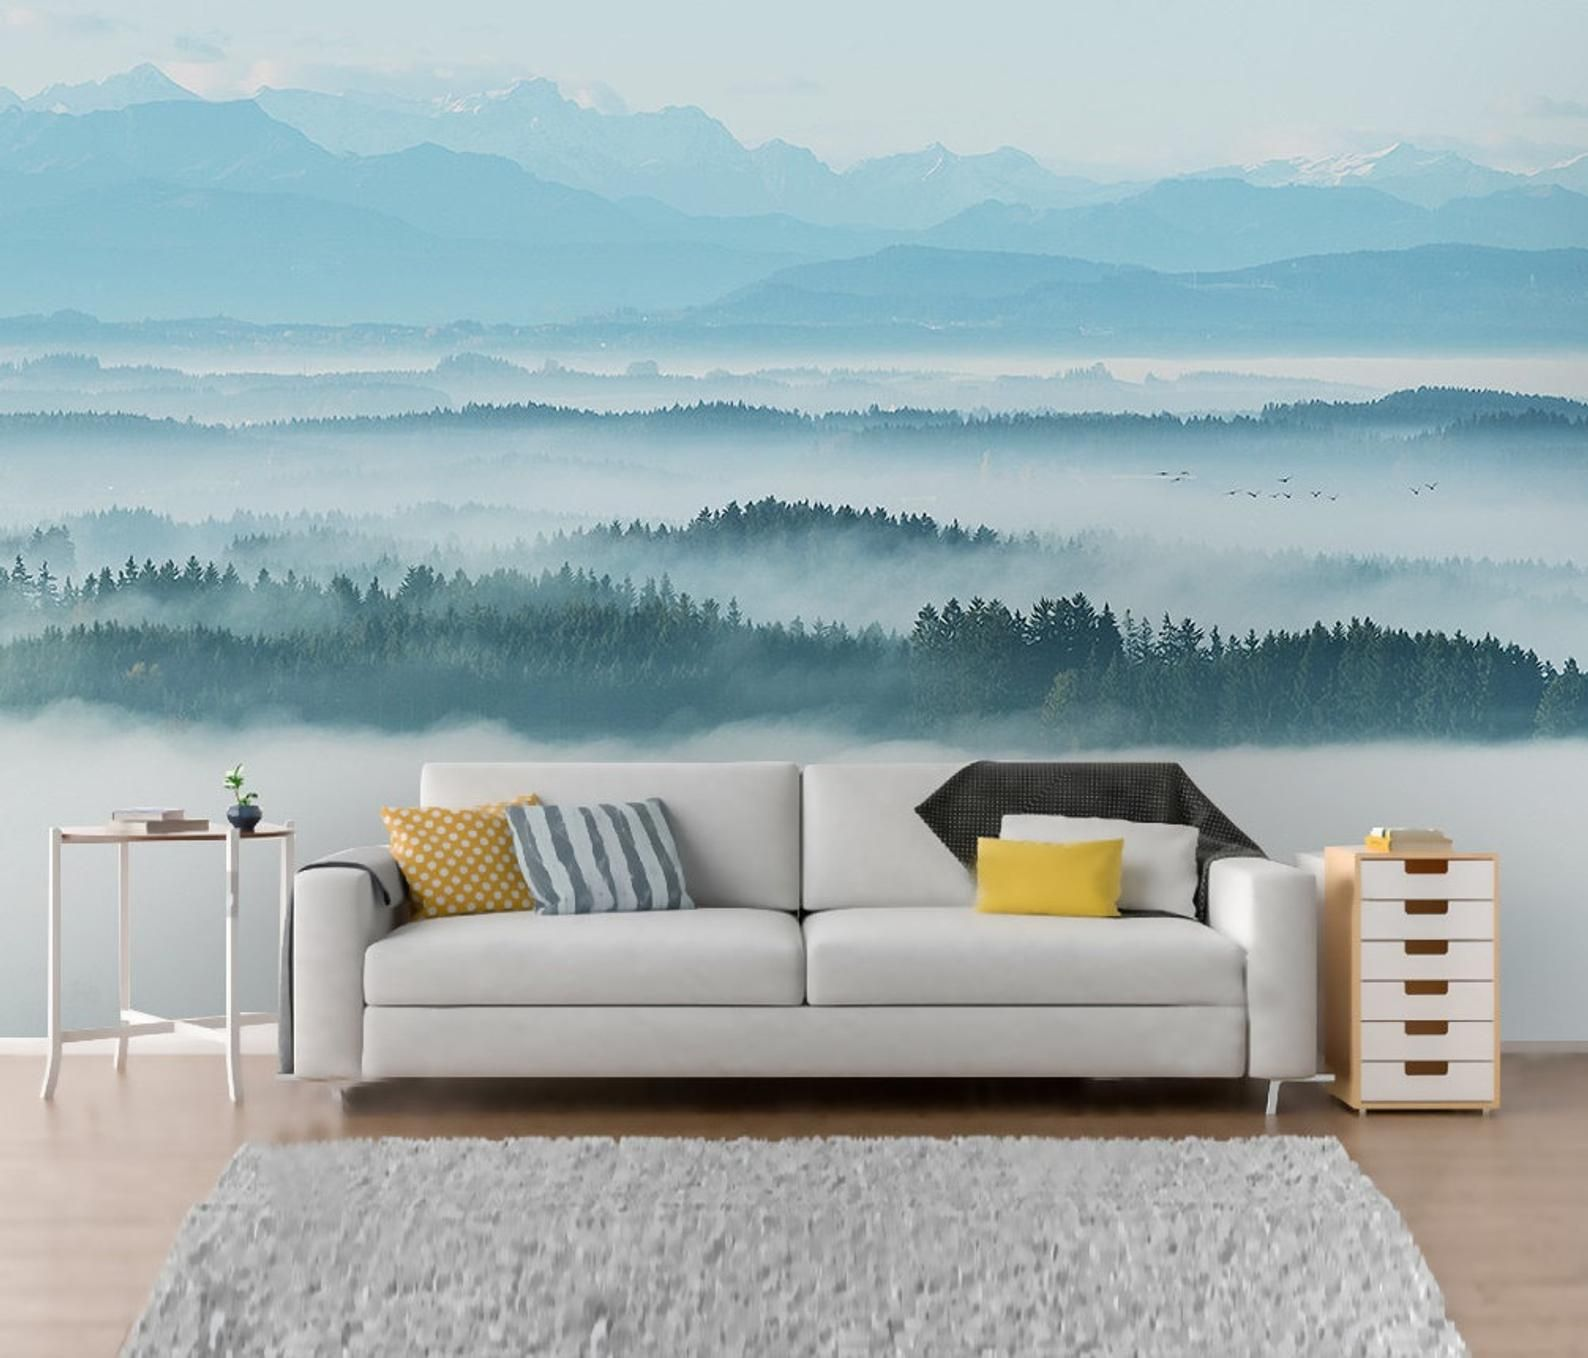 Self Adhesive Peel and Stick Misty Forest Wallpaper